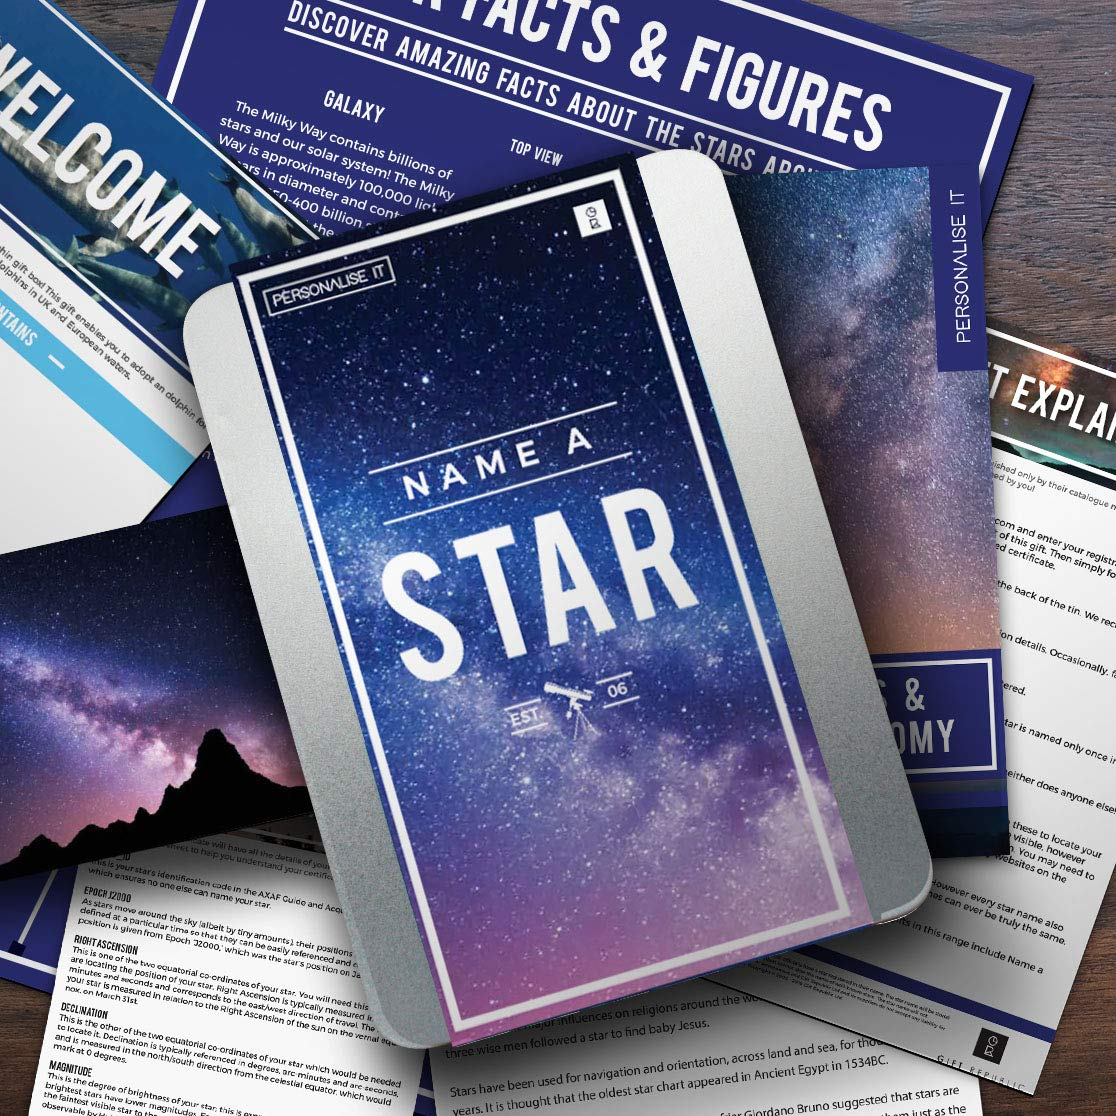 Star Registration Is Your Way To Go!